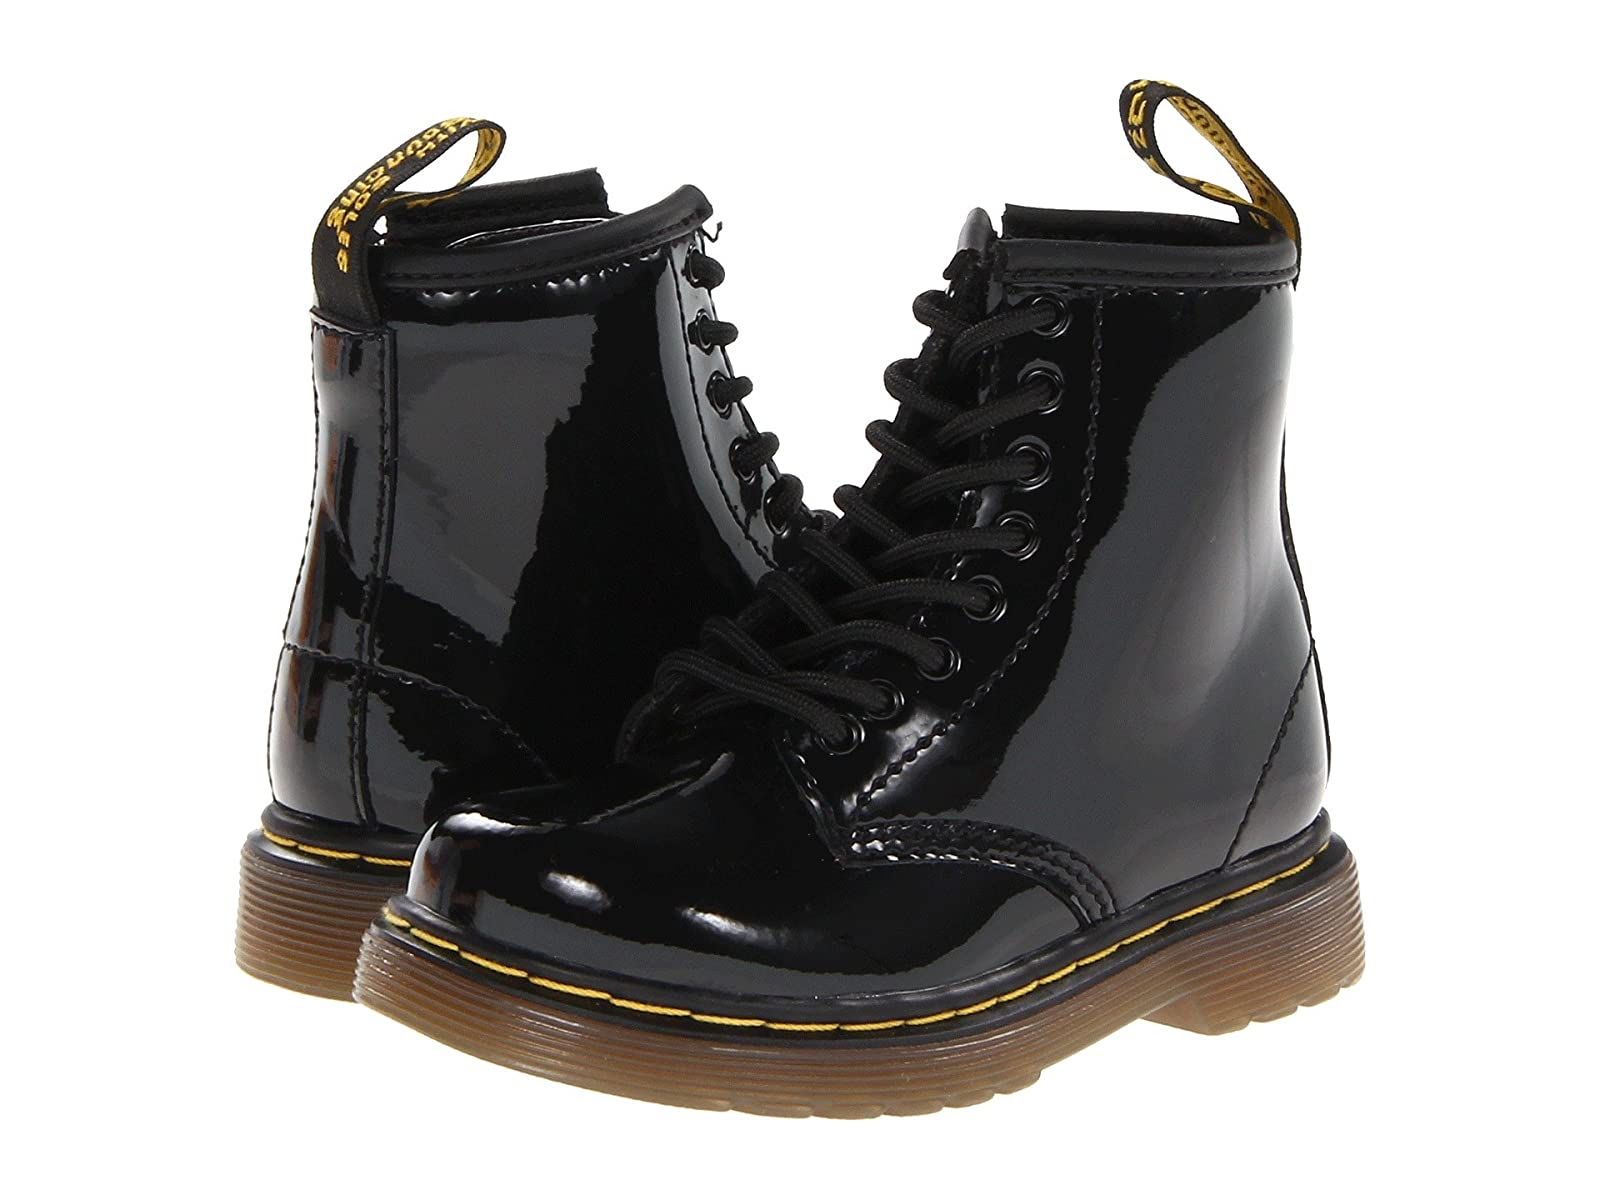 Dr. Martens Kid's Collection 1460 Toddler Brooklee Boot (Toddler)Affordable and distinctive shoes